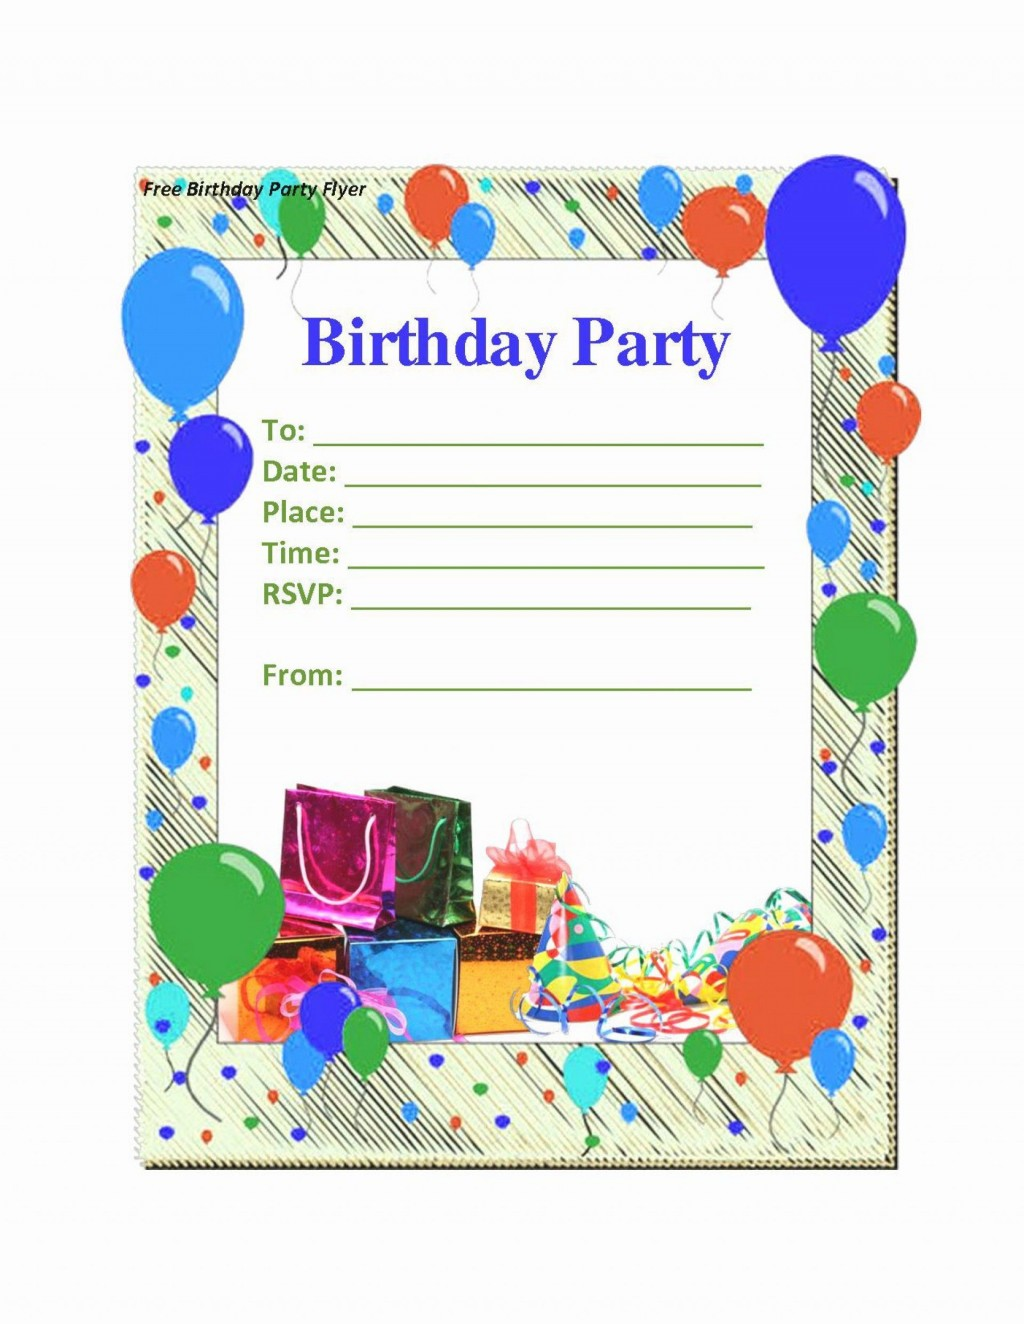 010 Archaicawful Microsoft Word Birthday Card Invitation Template Example Large